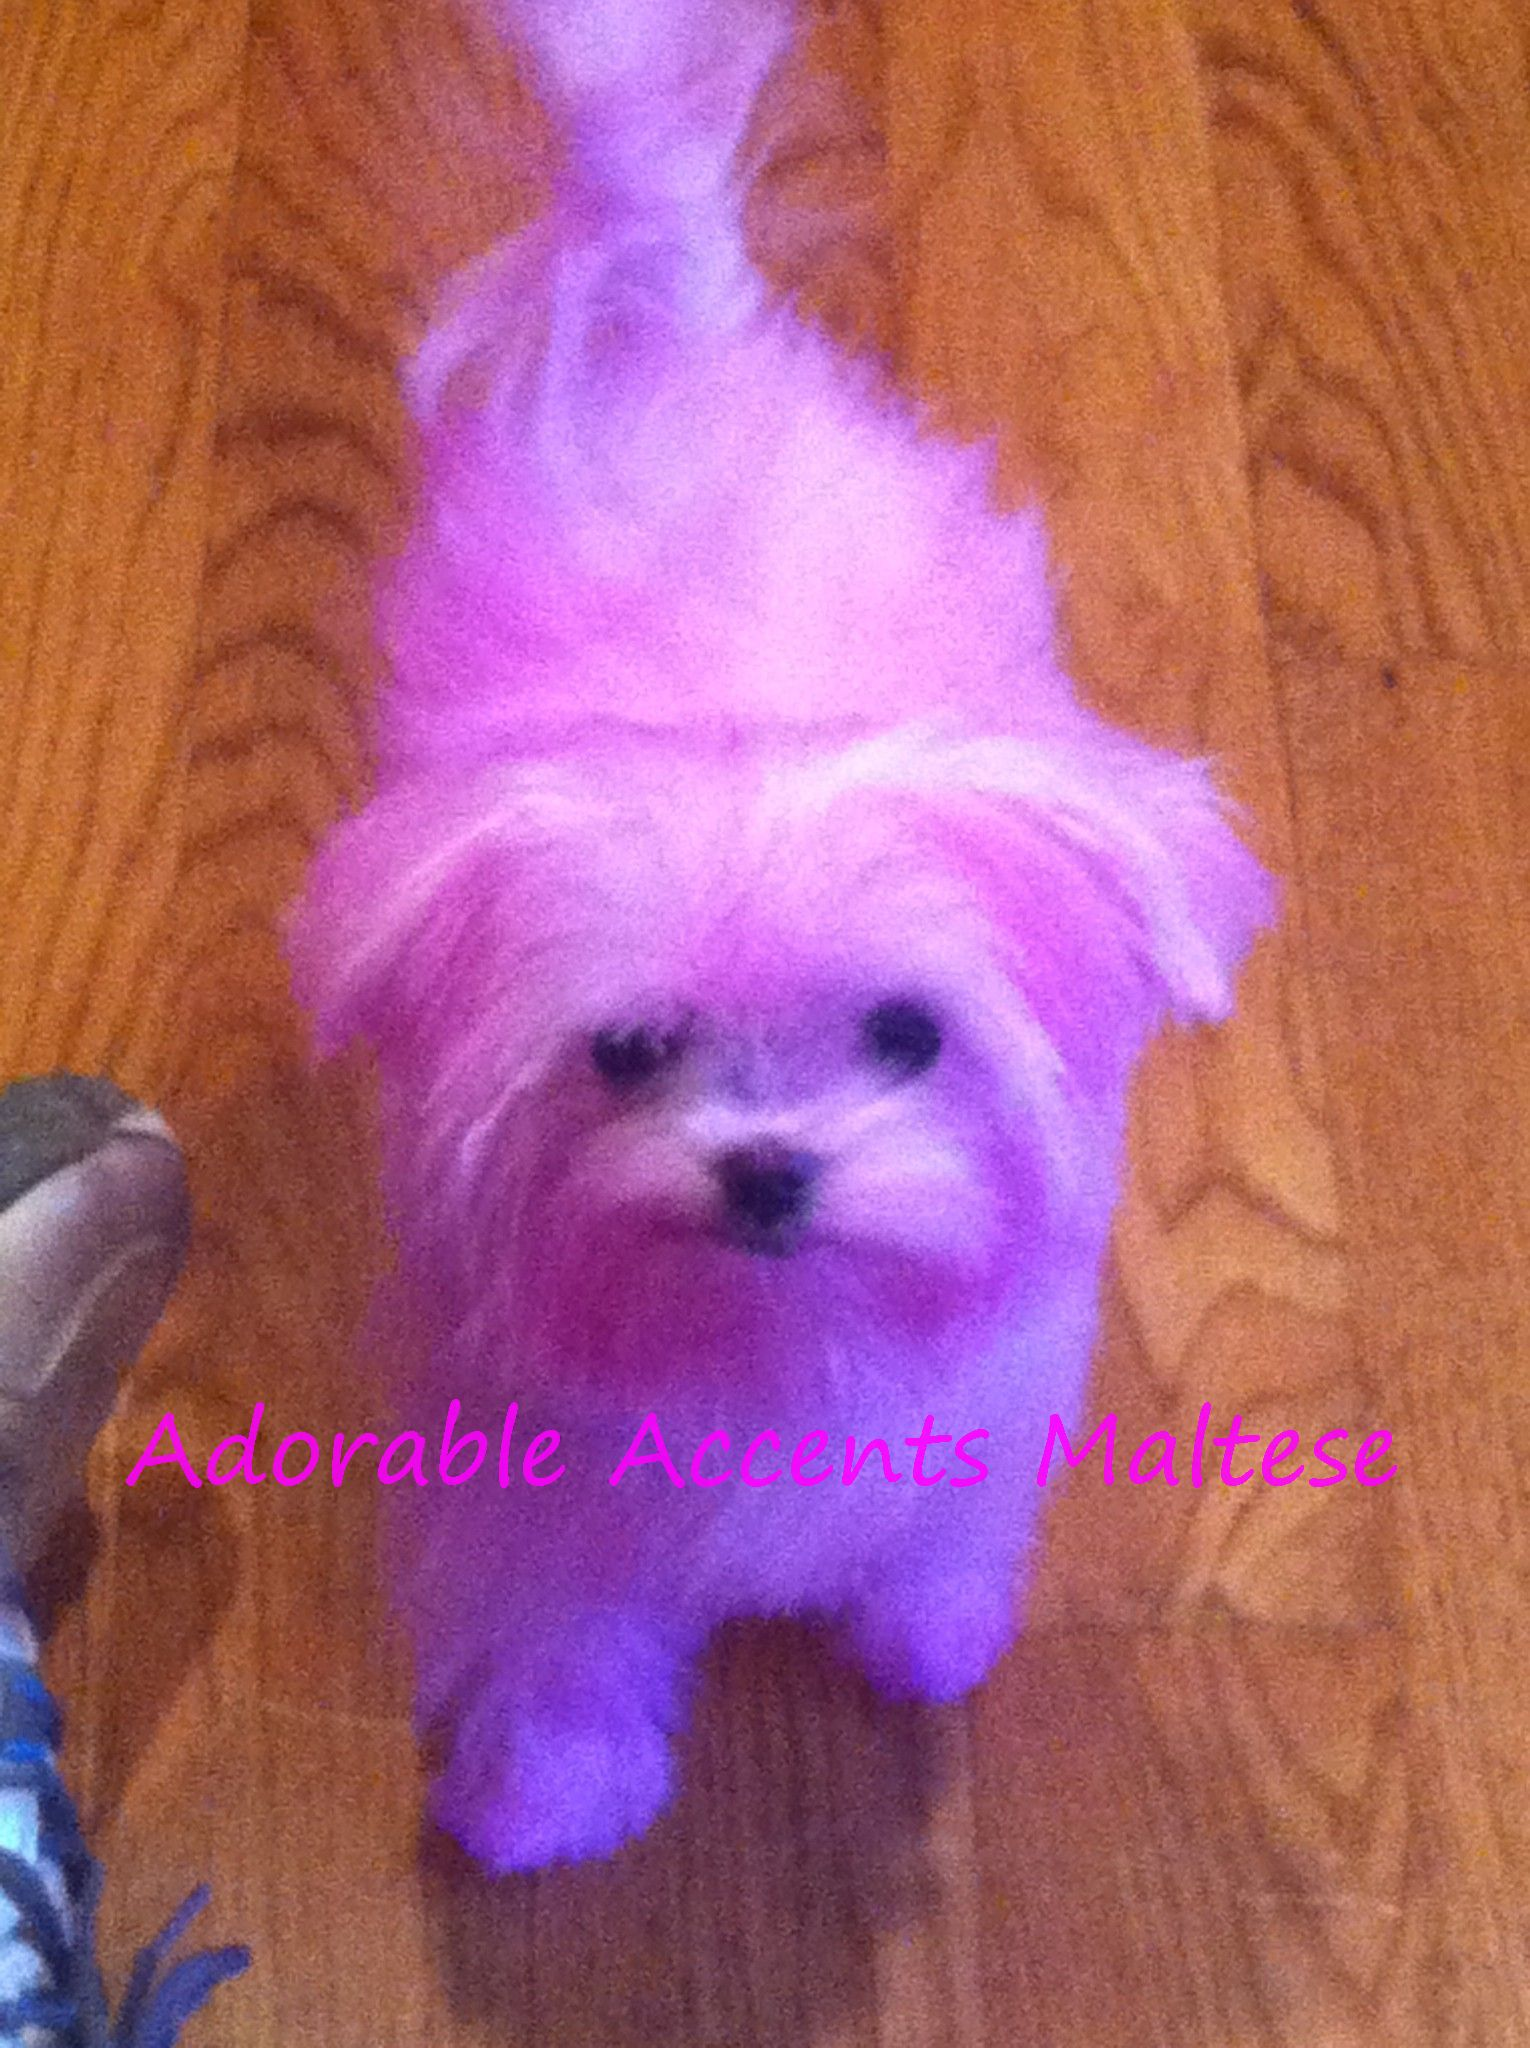 Adorable Accents Maltese Puppies For Sale New Jersey AKC